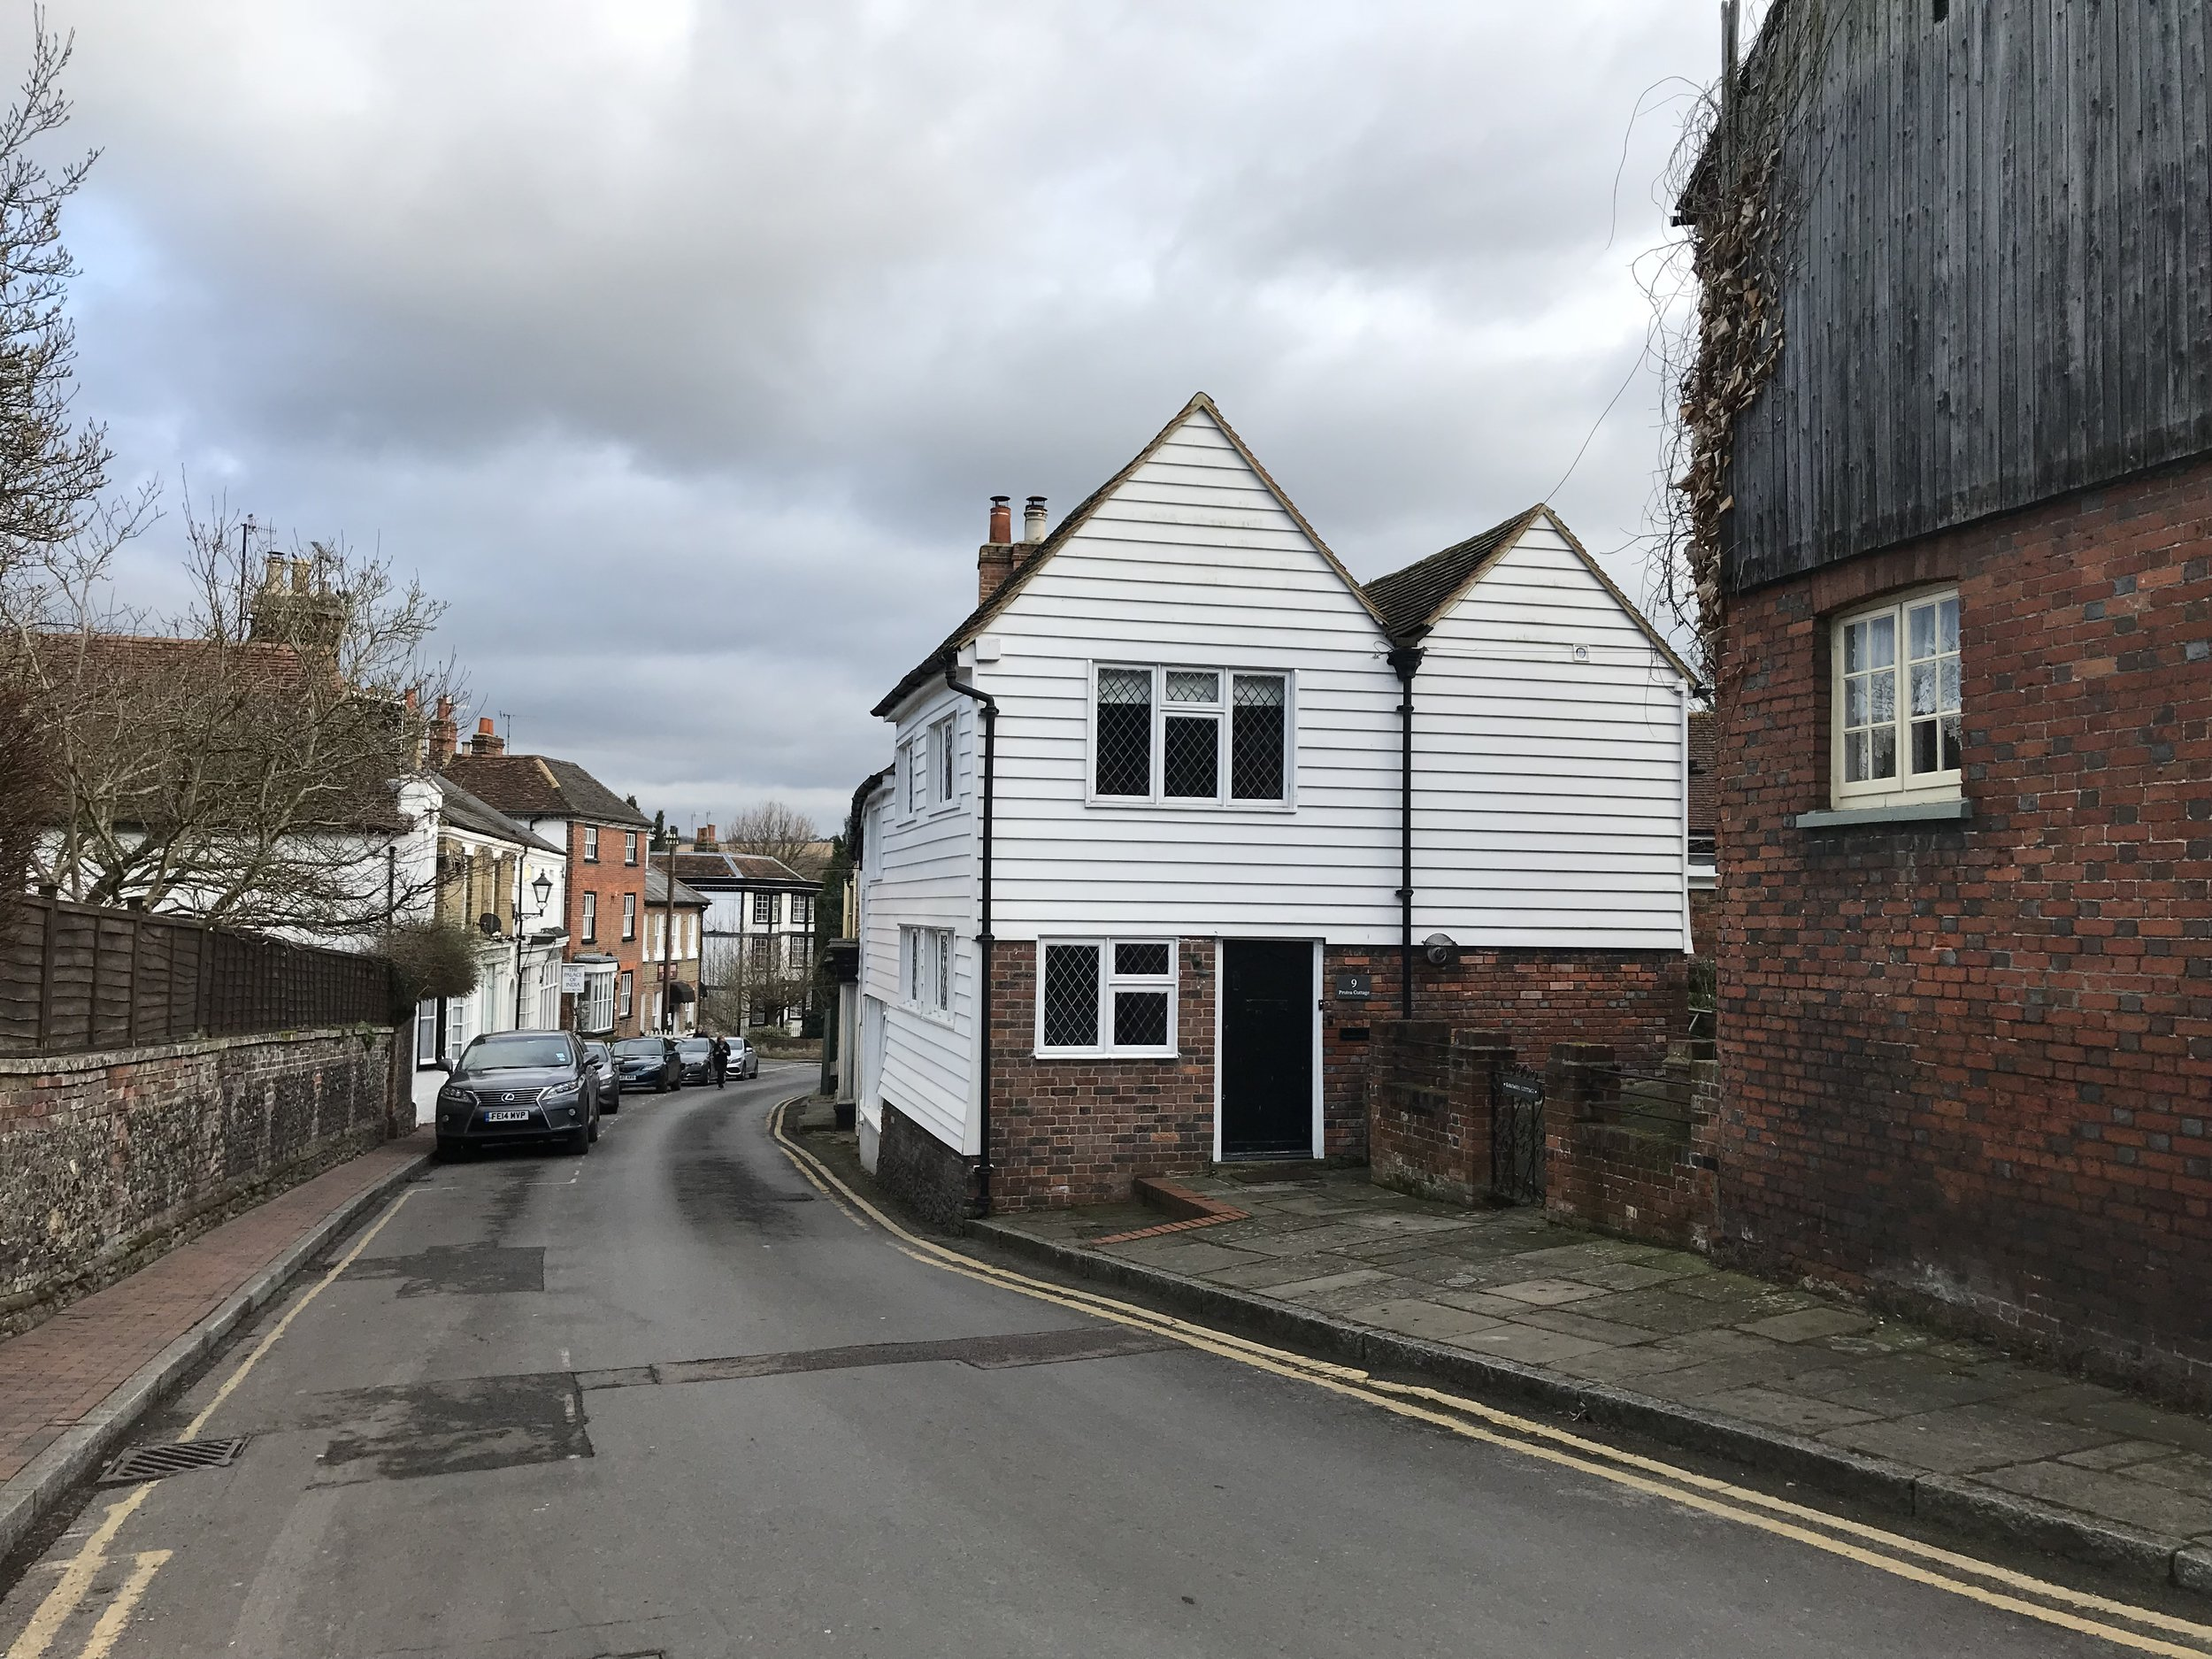 Twin gables are a common feature for housing throughout Kent, and provide a defining point in the streetscape here. -